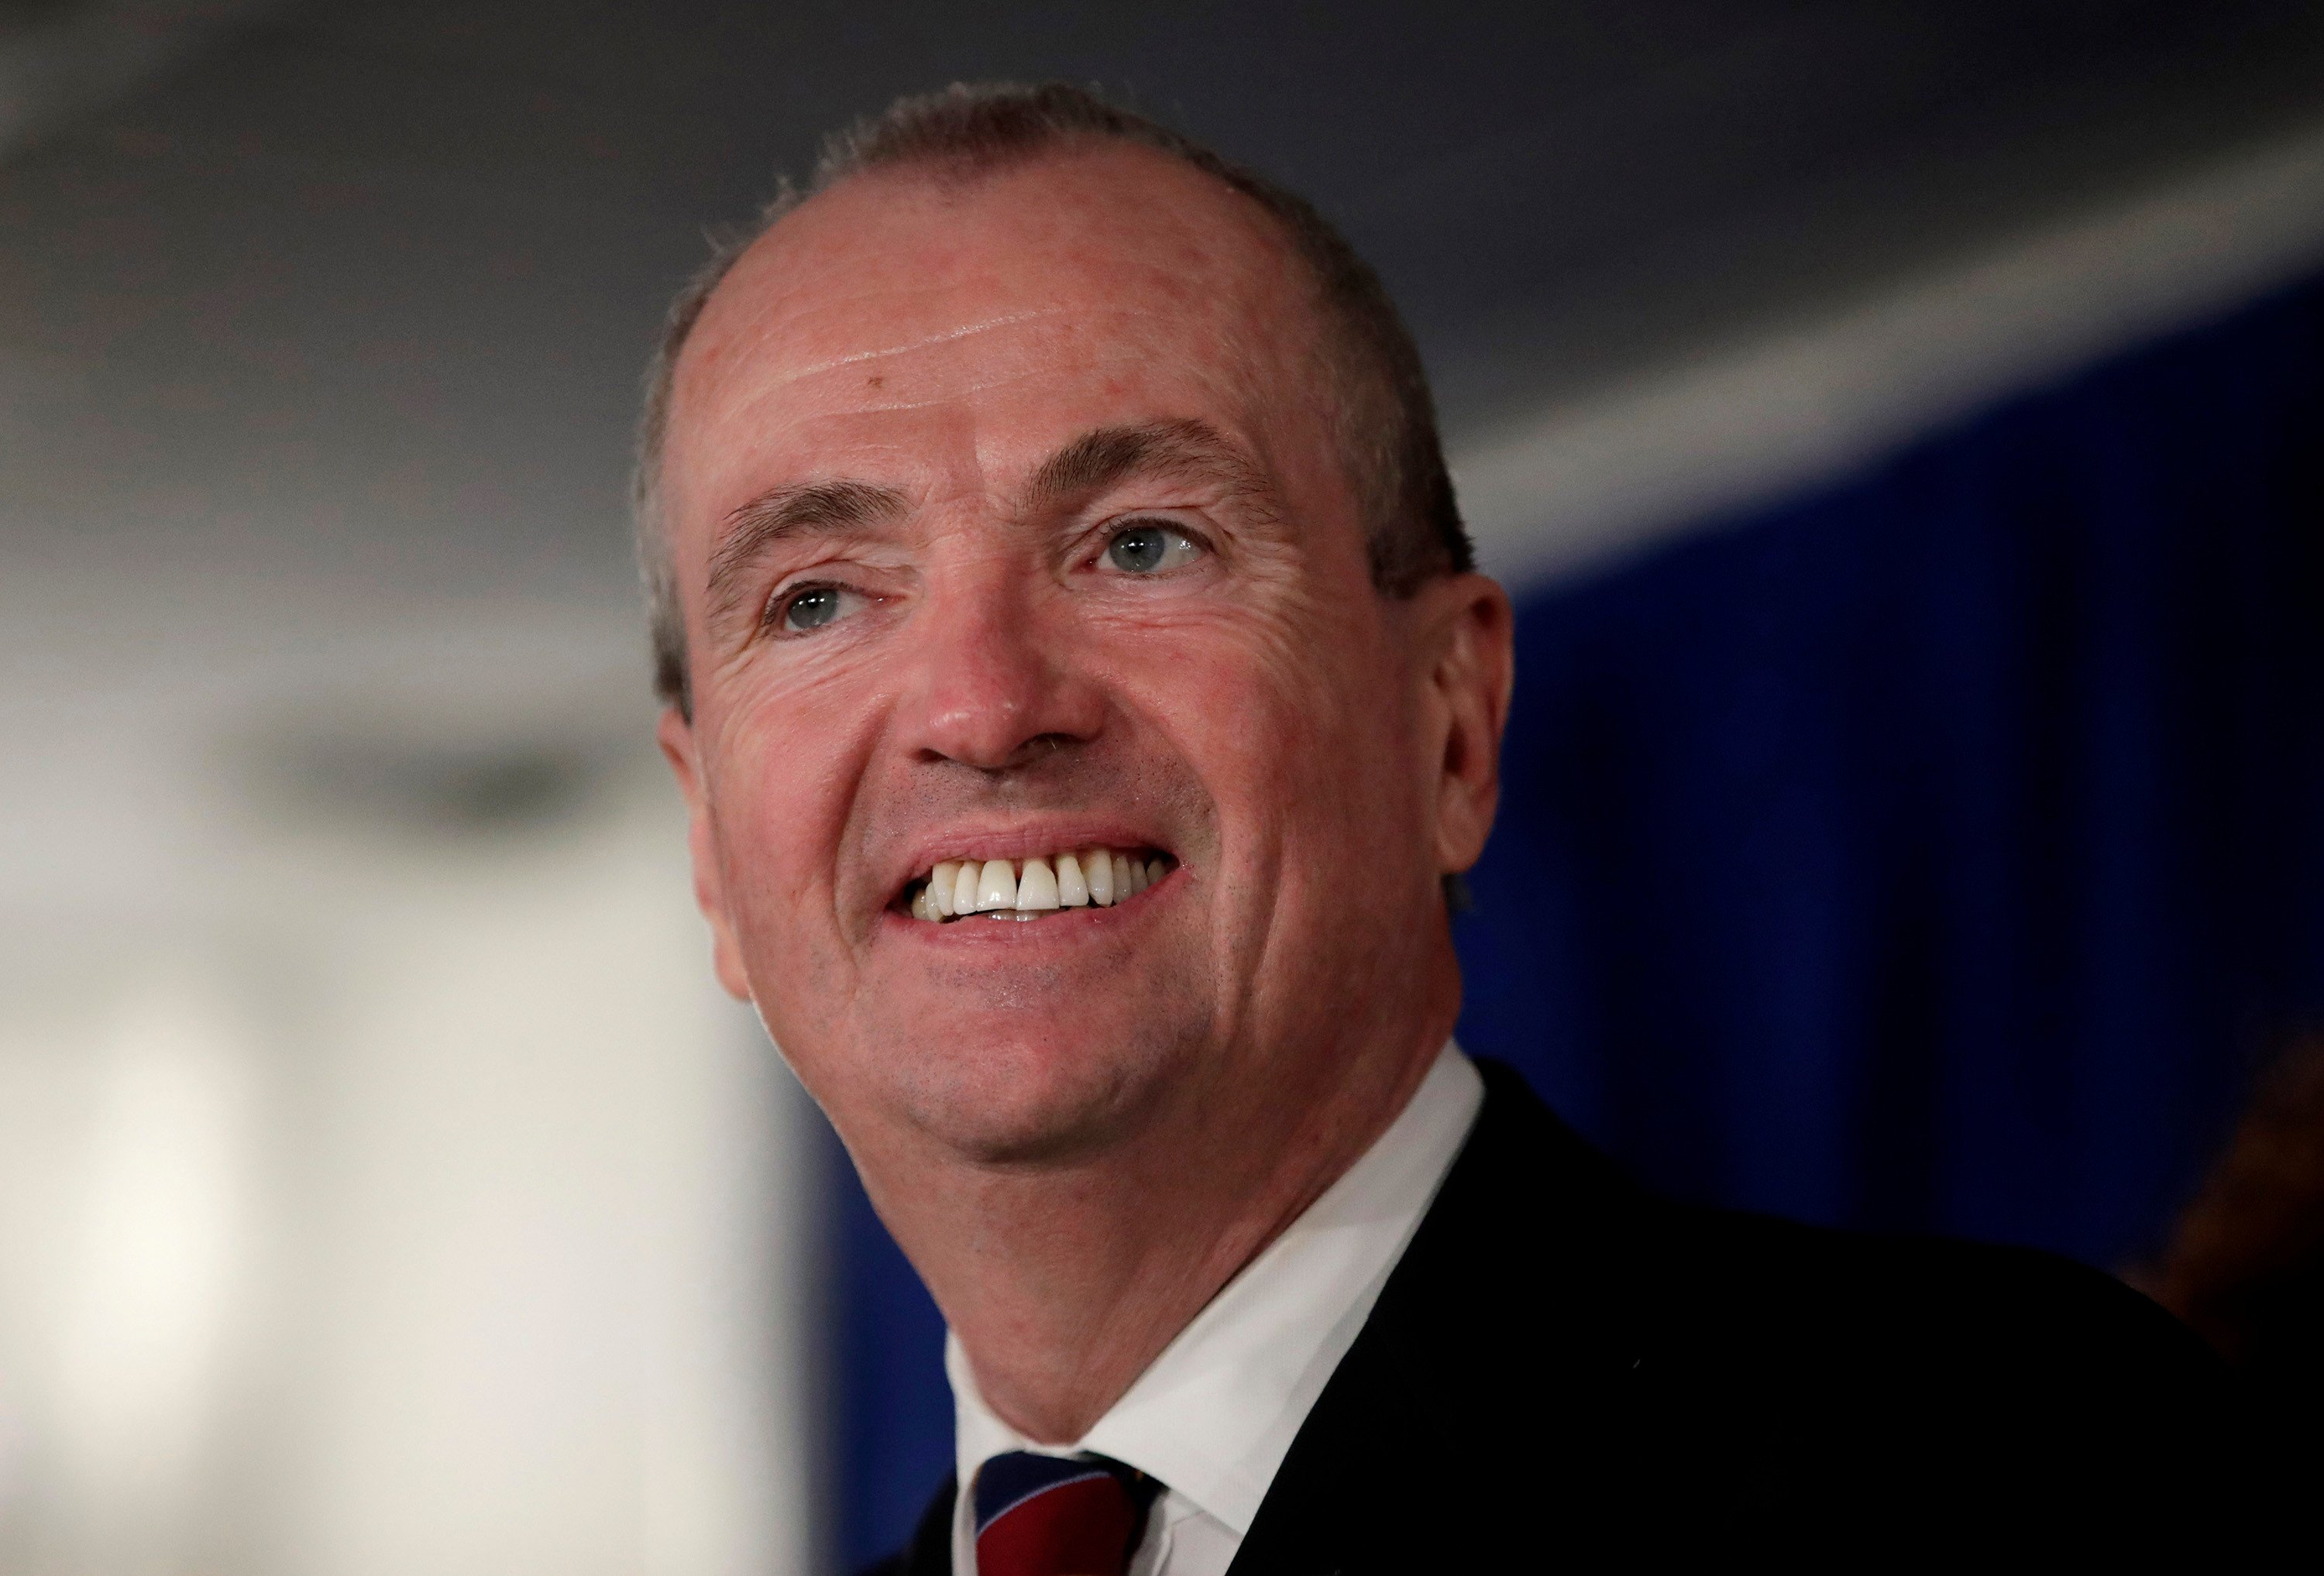 New Jersey's new gov is either clueless or a union puppet